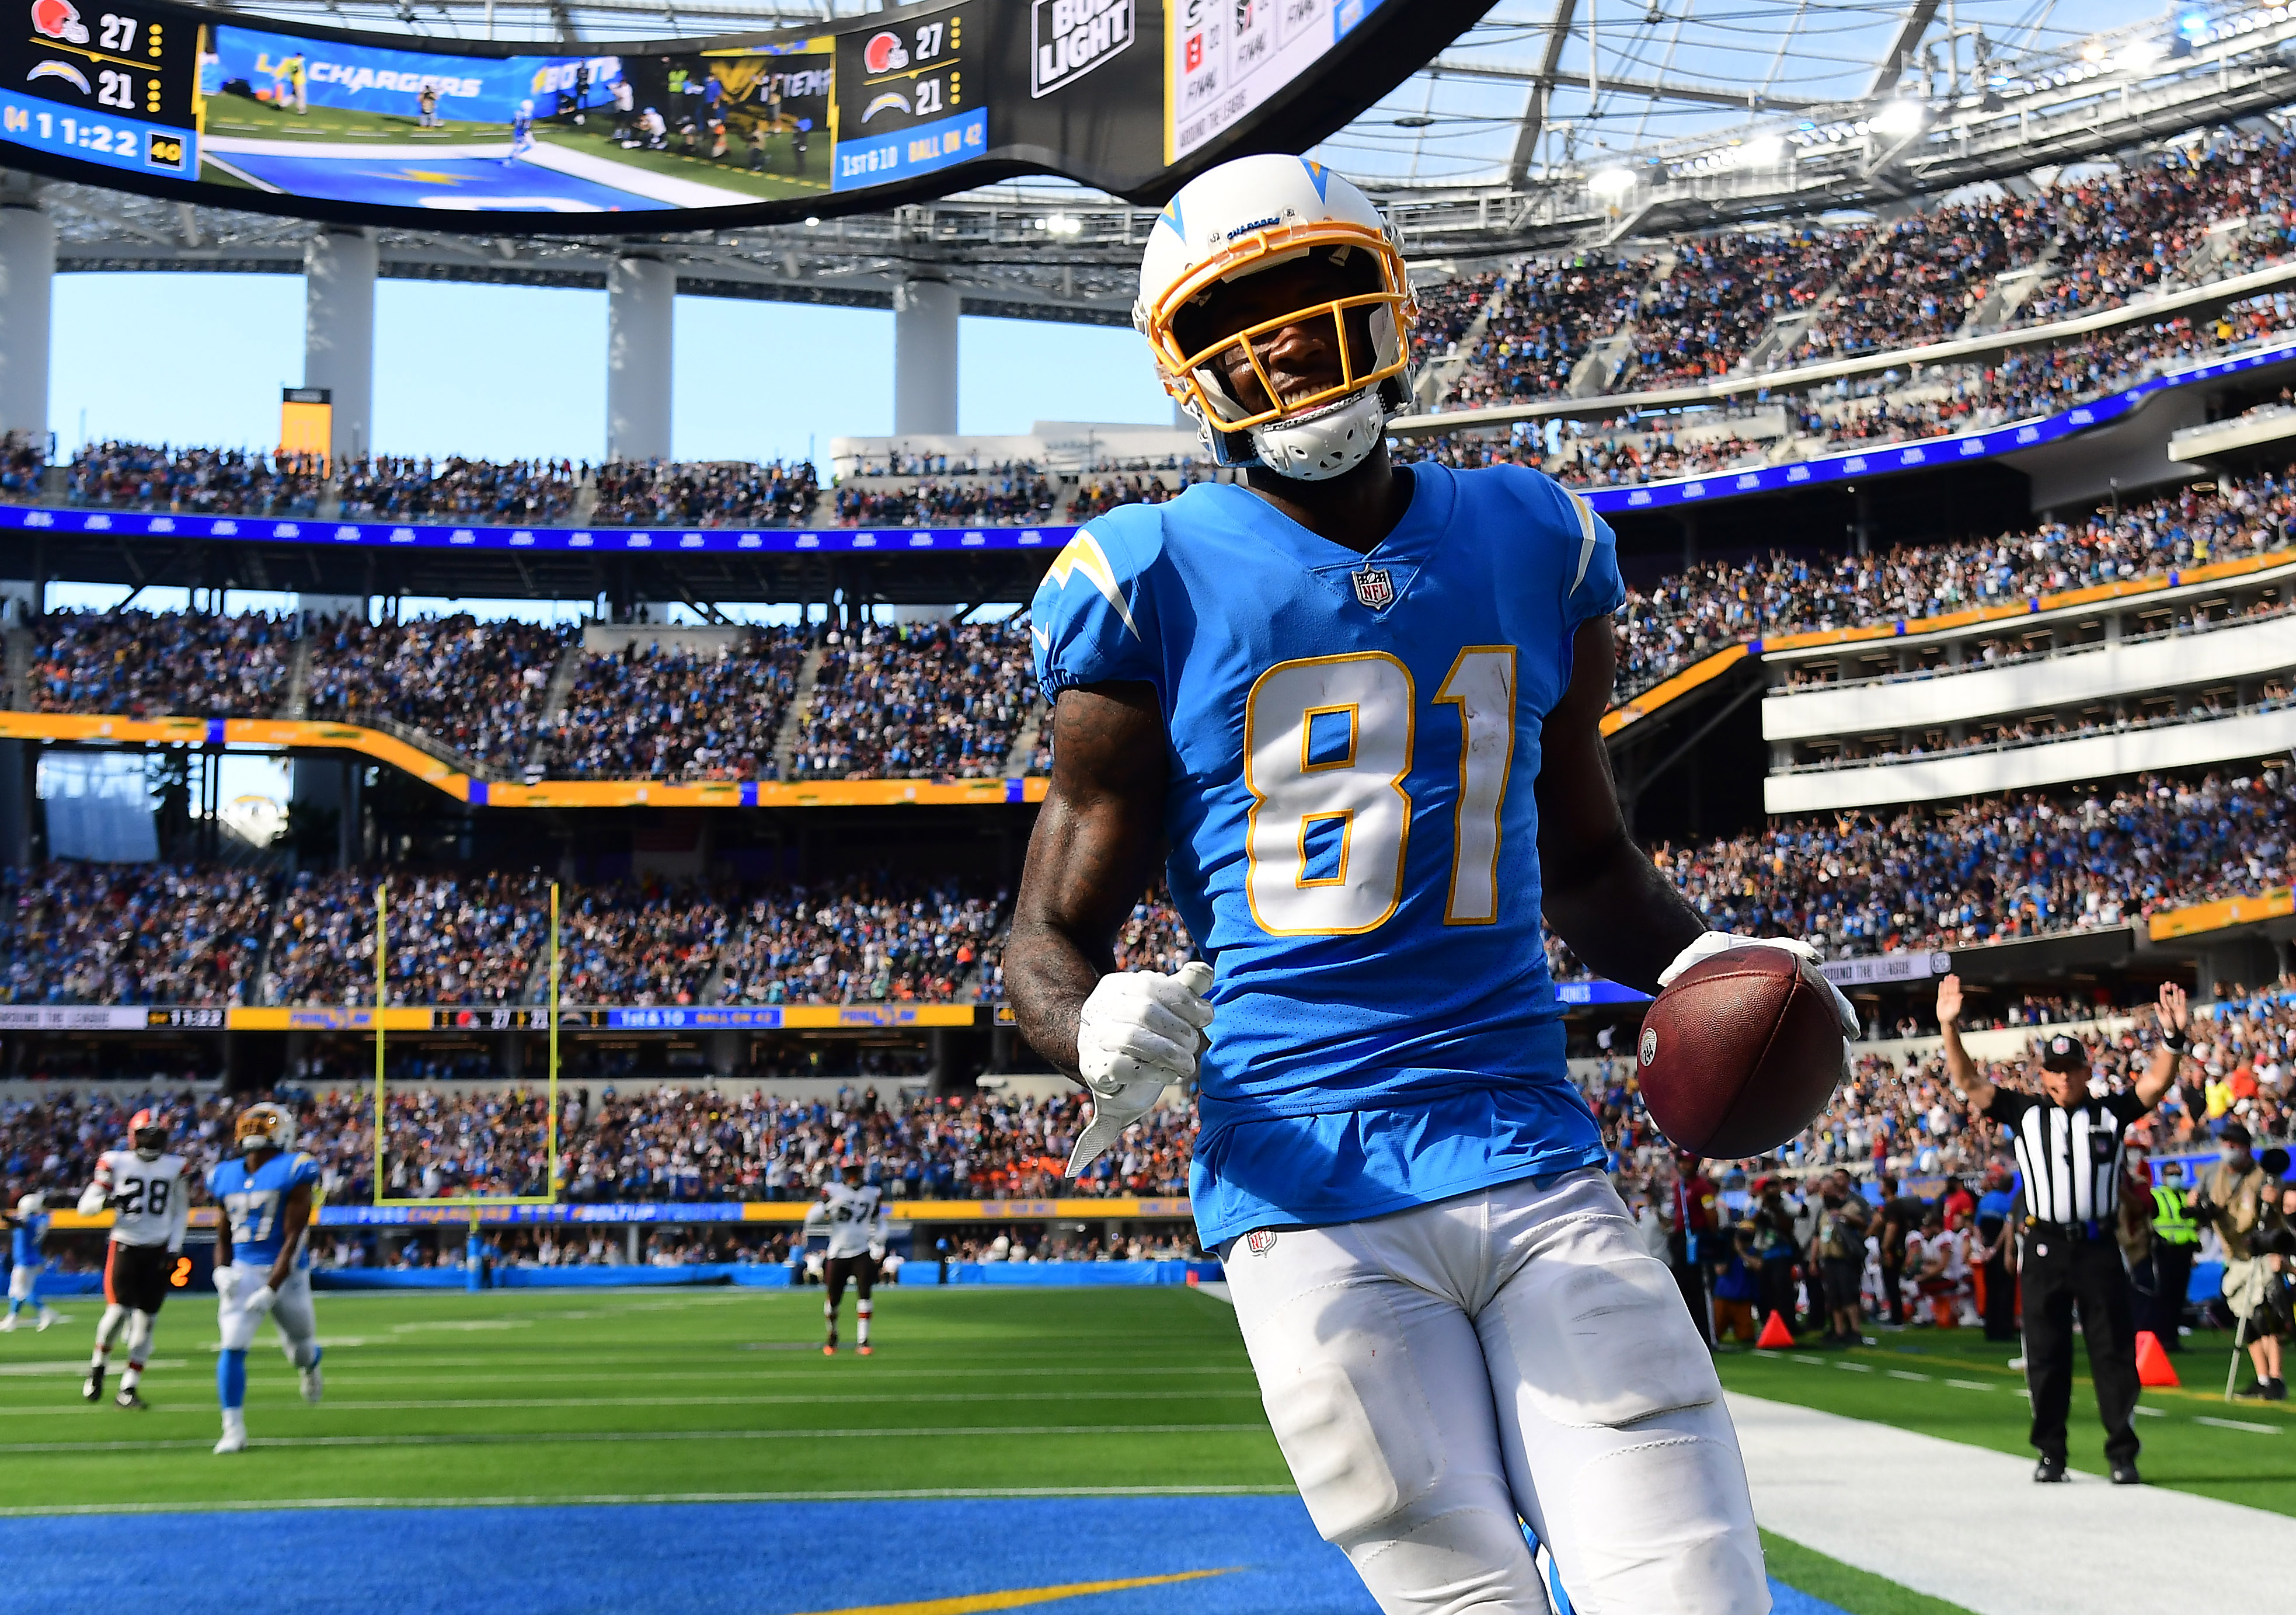 NFL: Cleveland Browns at Los Angeles Chargers